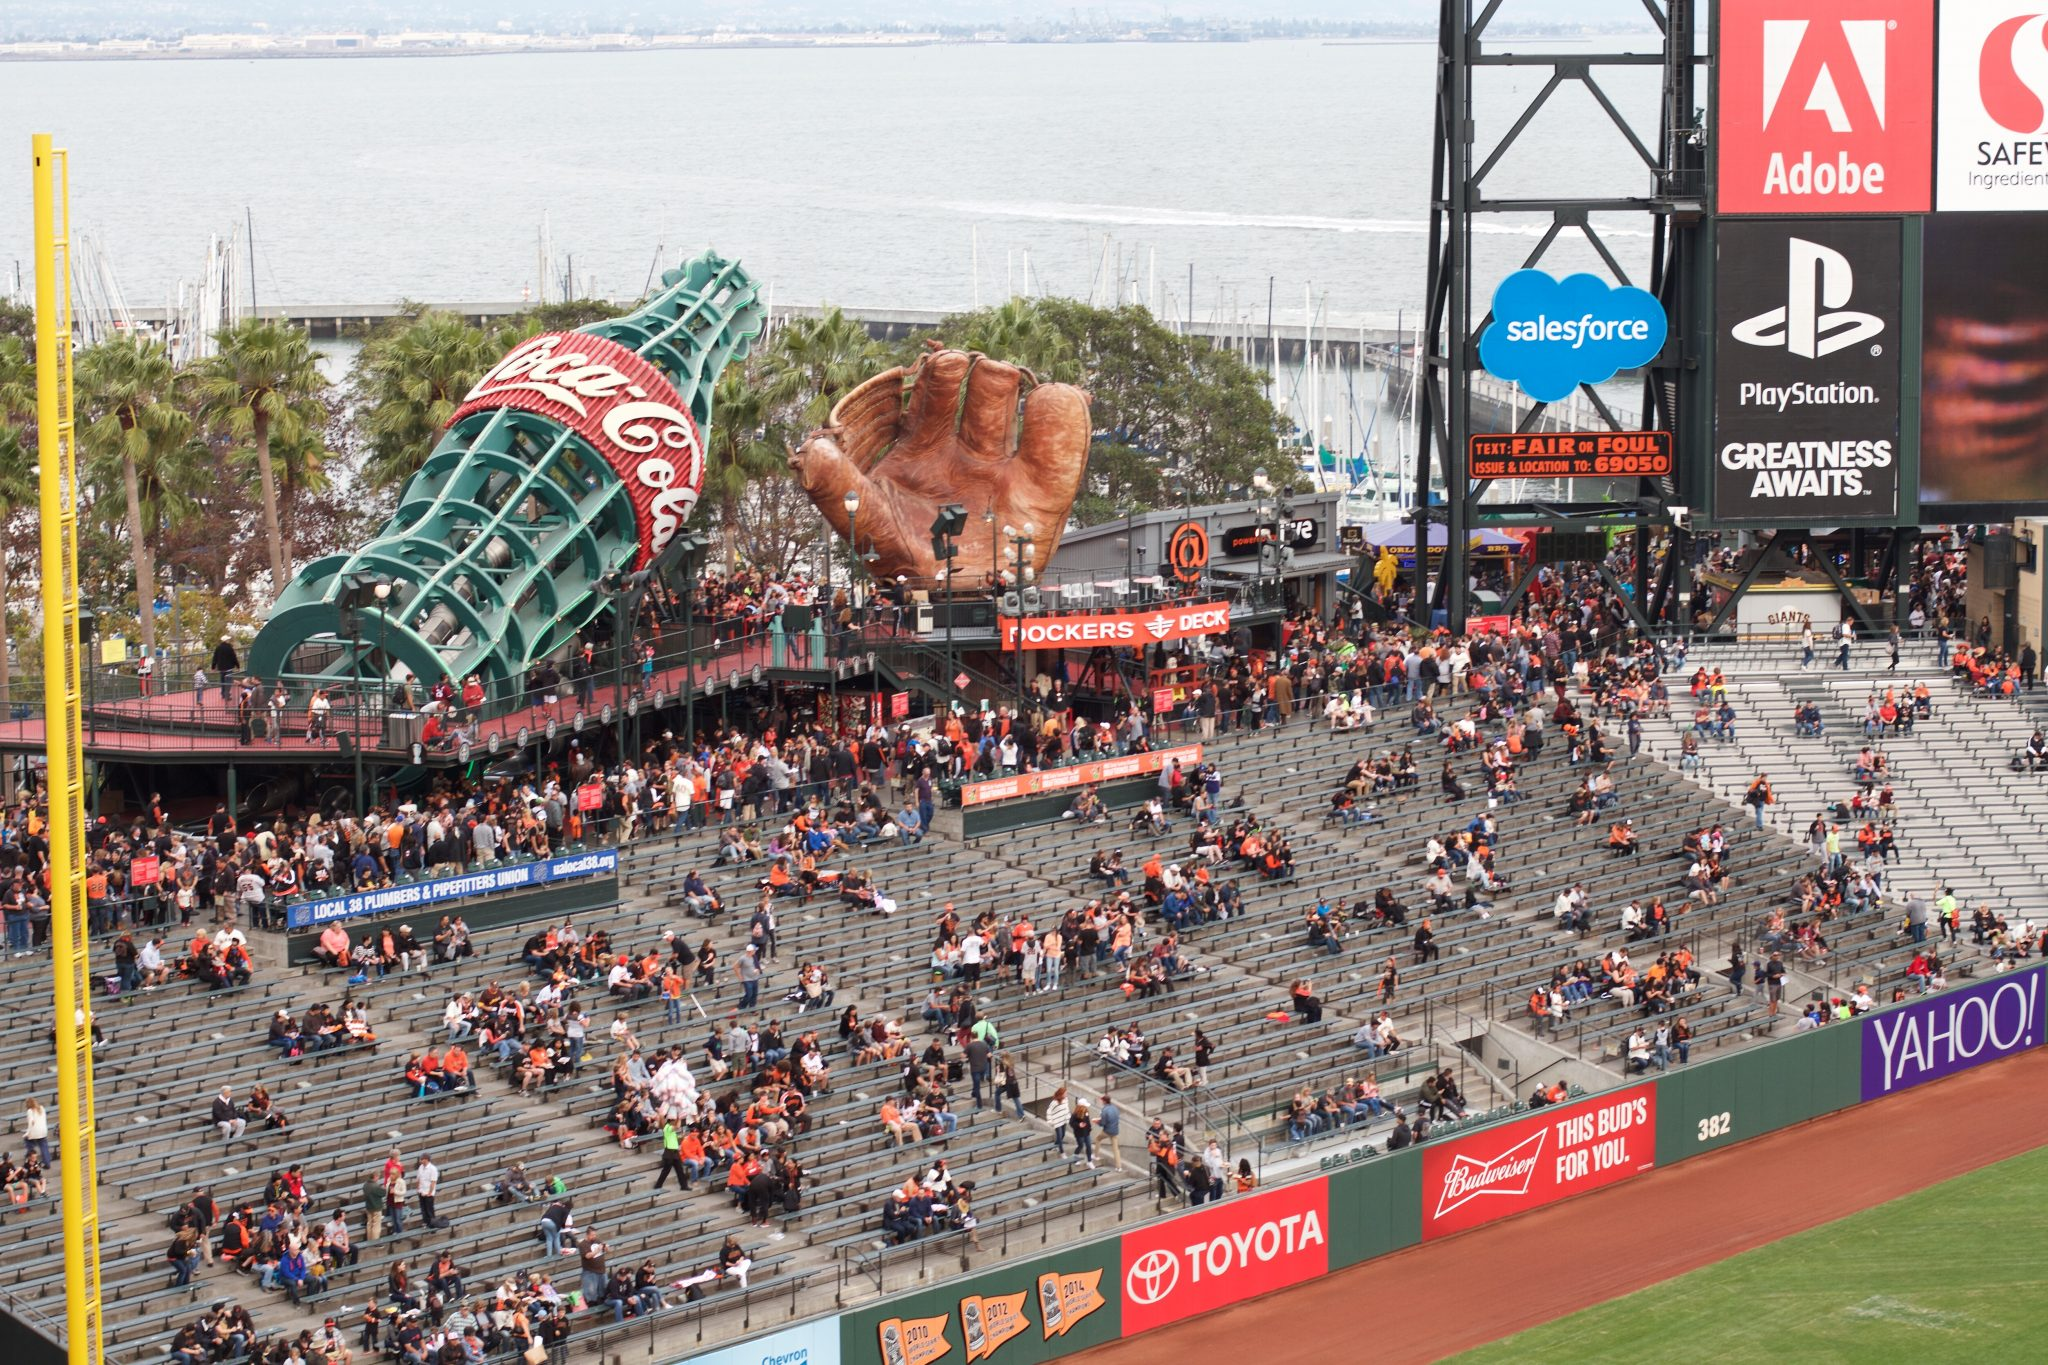 September 2015 - AT&T Park, San Francisco, CA. Photo by Jamie Balaoro